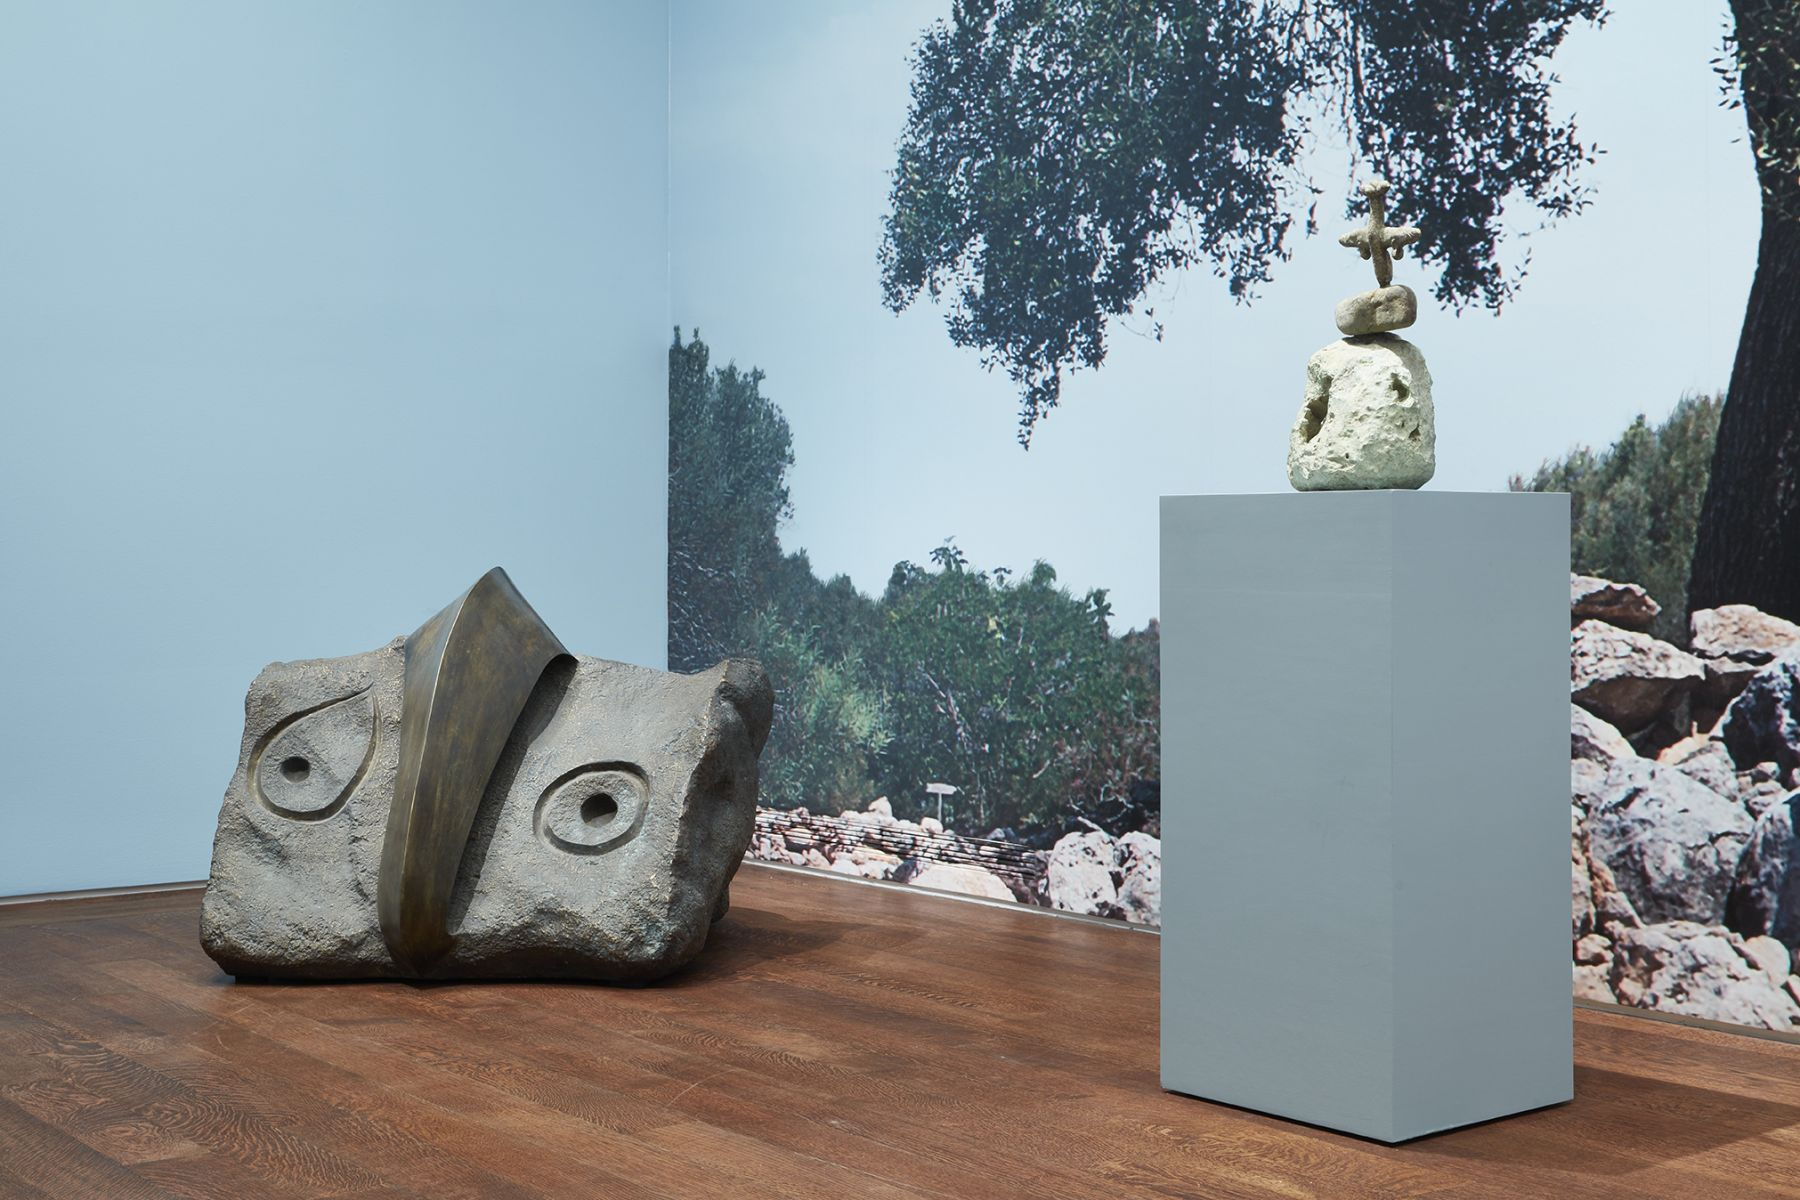 Installation view of Miró the Sculptor: Elements of Nature